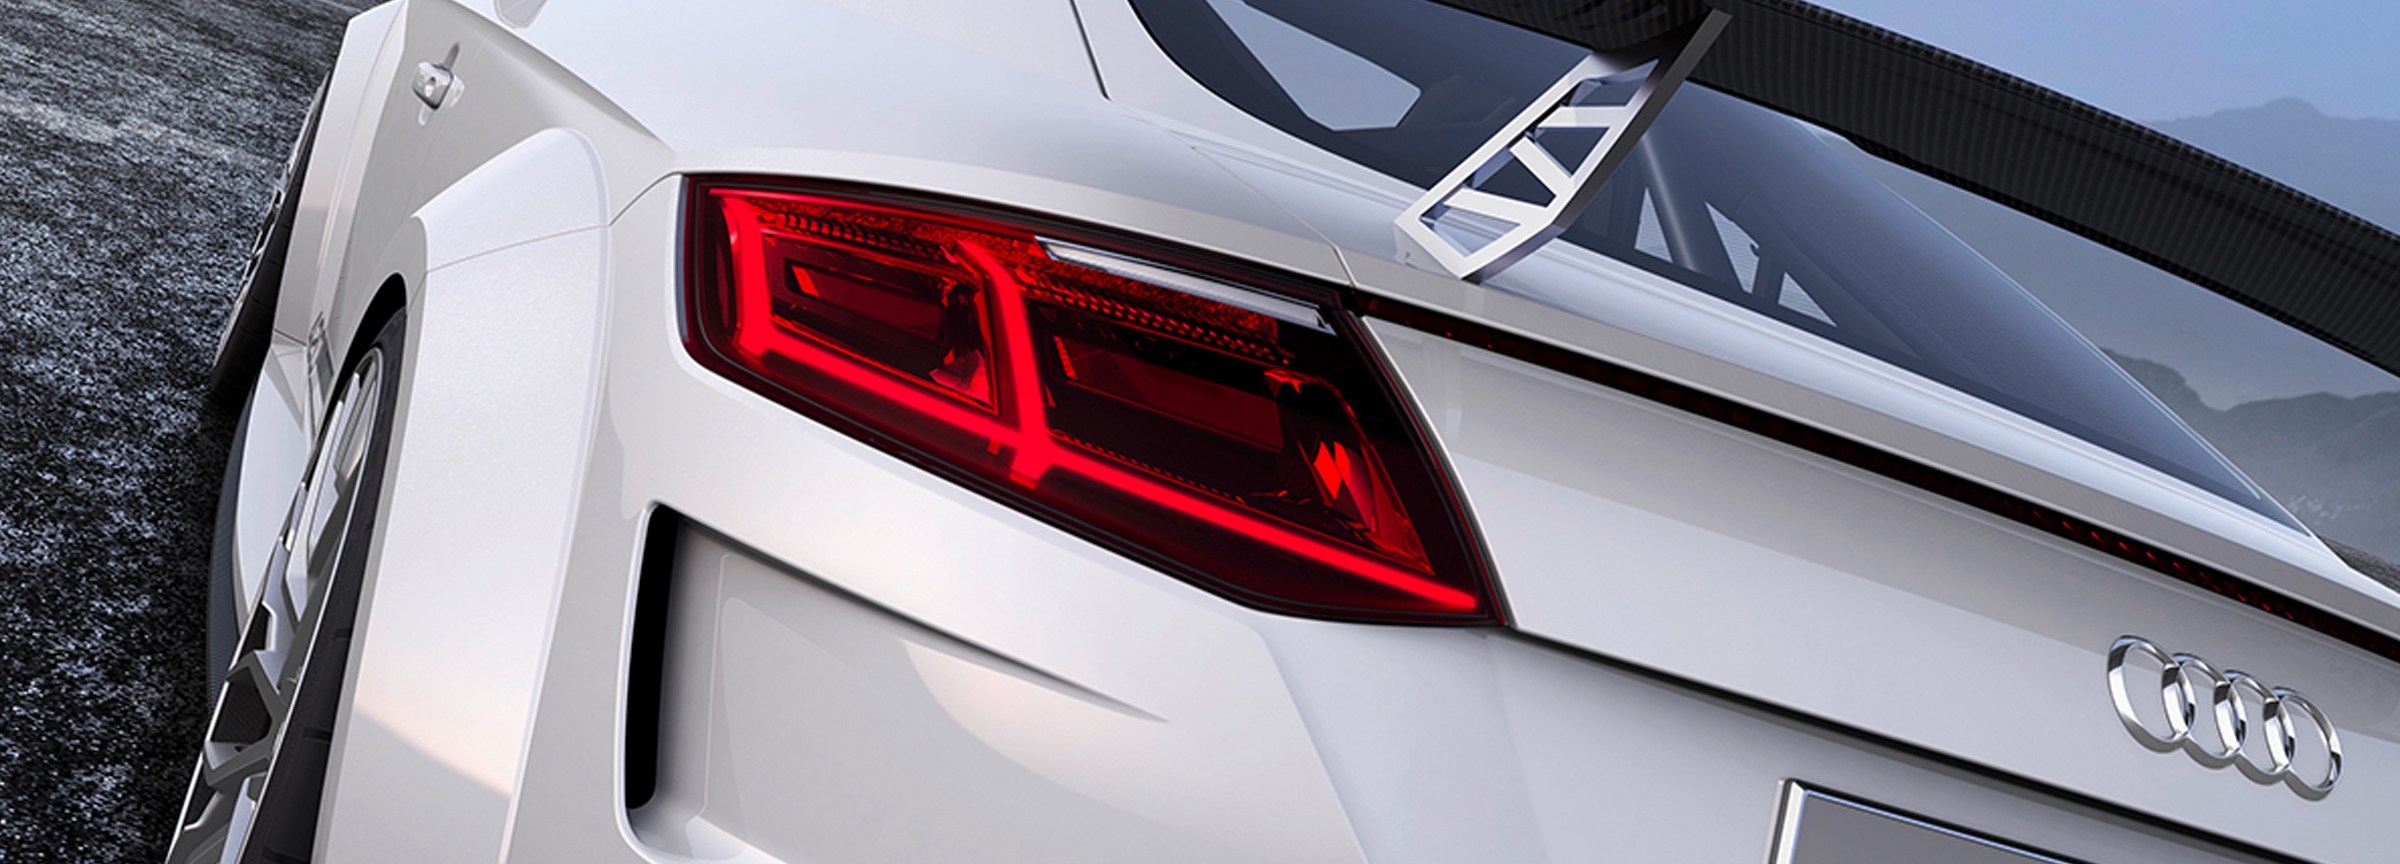 Audi TT Sport rearview Creative Wave